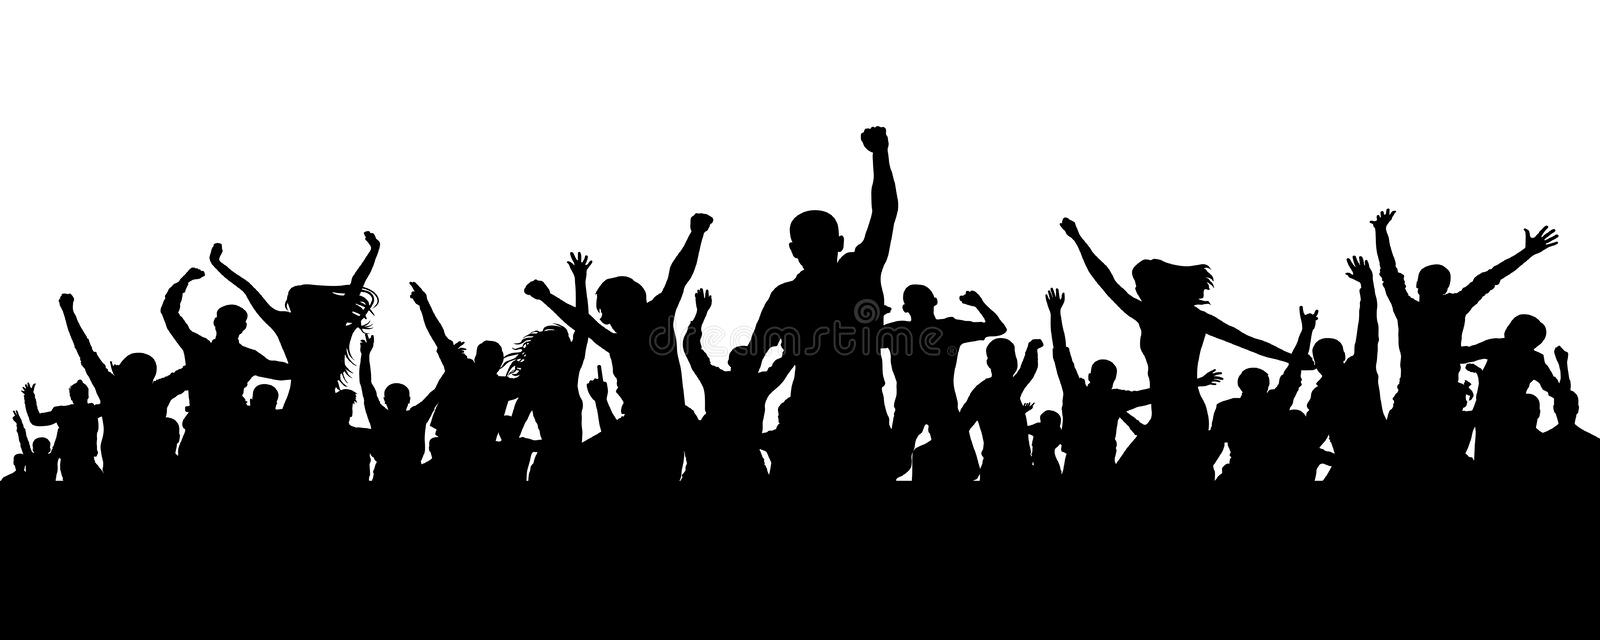 Joyful mob. Crowd cheerful people silhouette. Applause crowd. Happy group friends of young people dancing at musical party, concer vector illustration